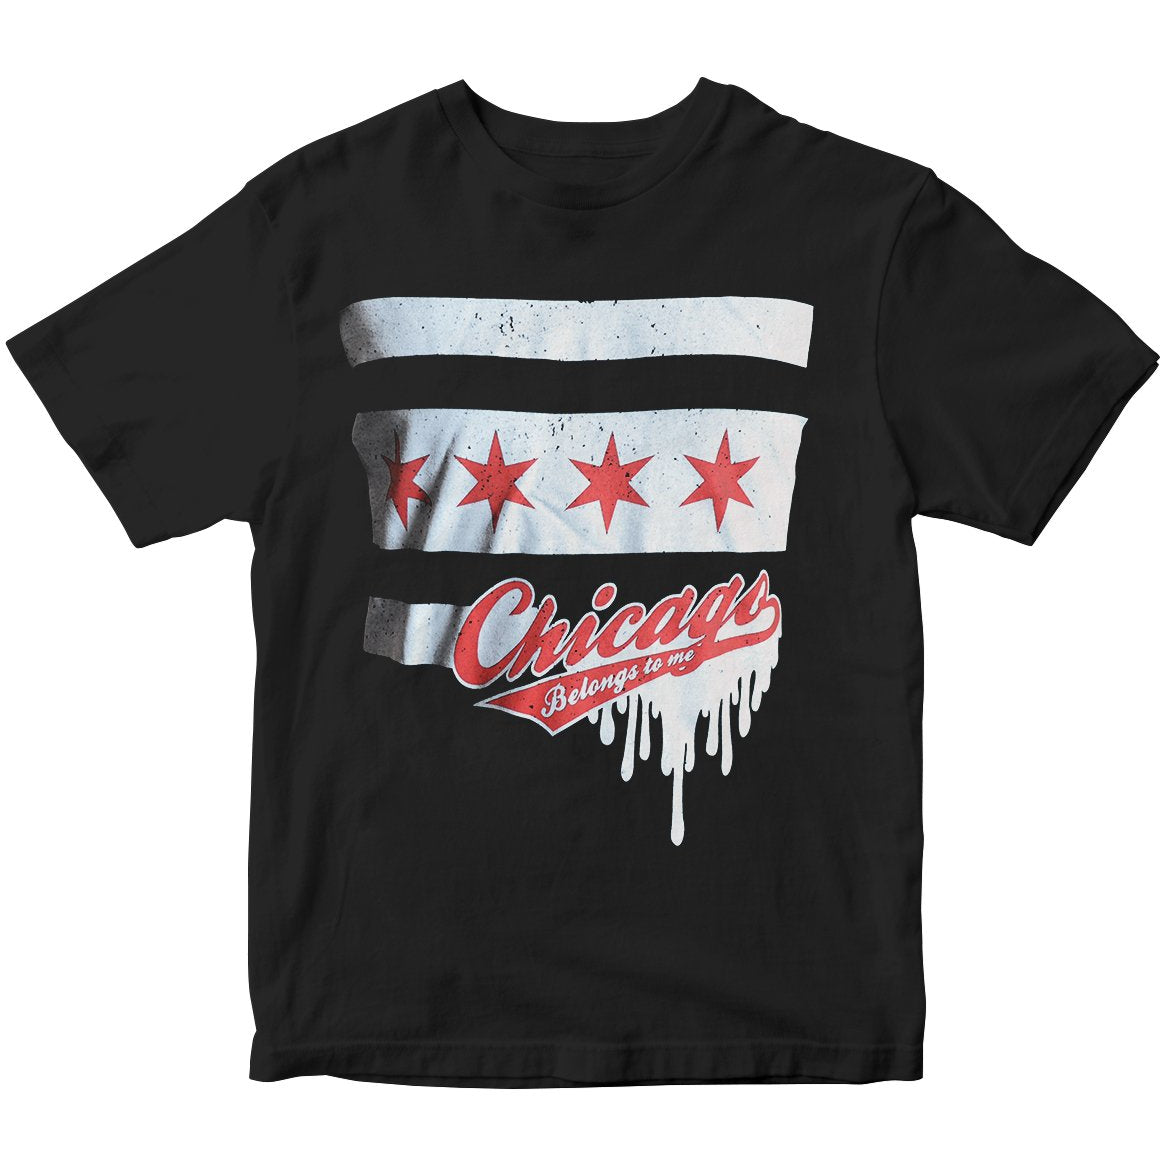 Cock Sparrer - Chicago Belongs To Me - Black - T-Shirt